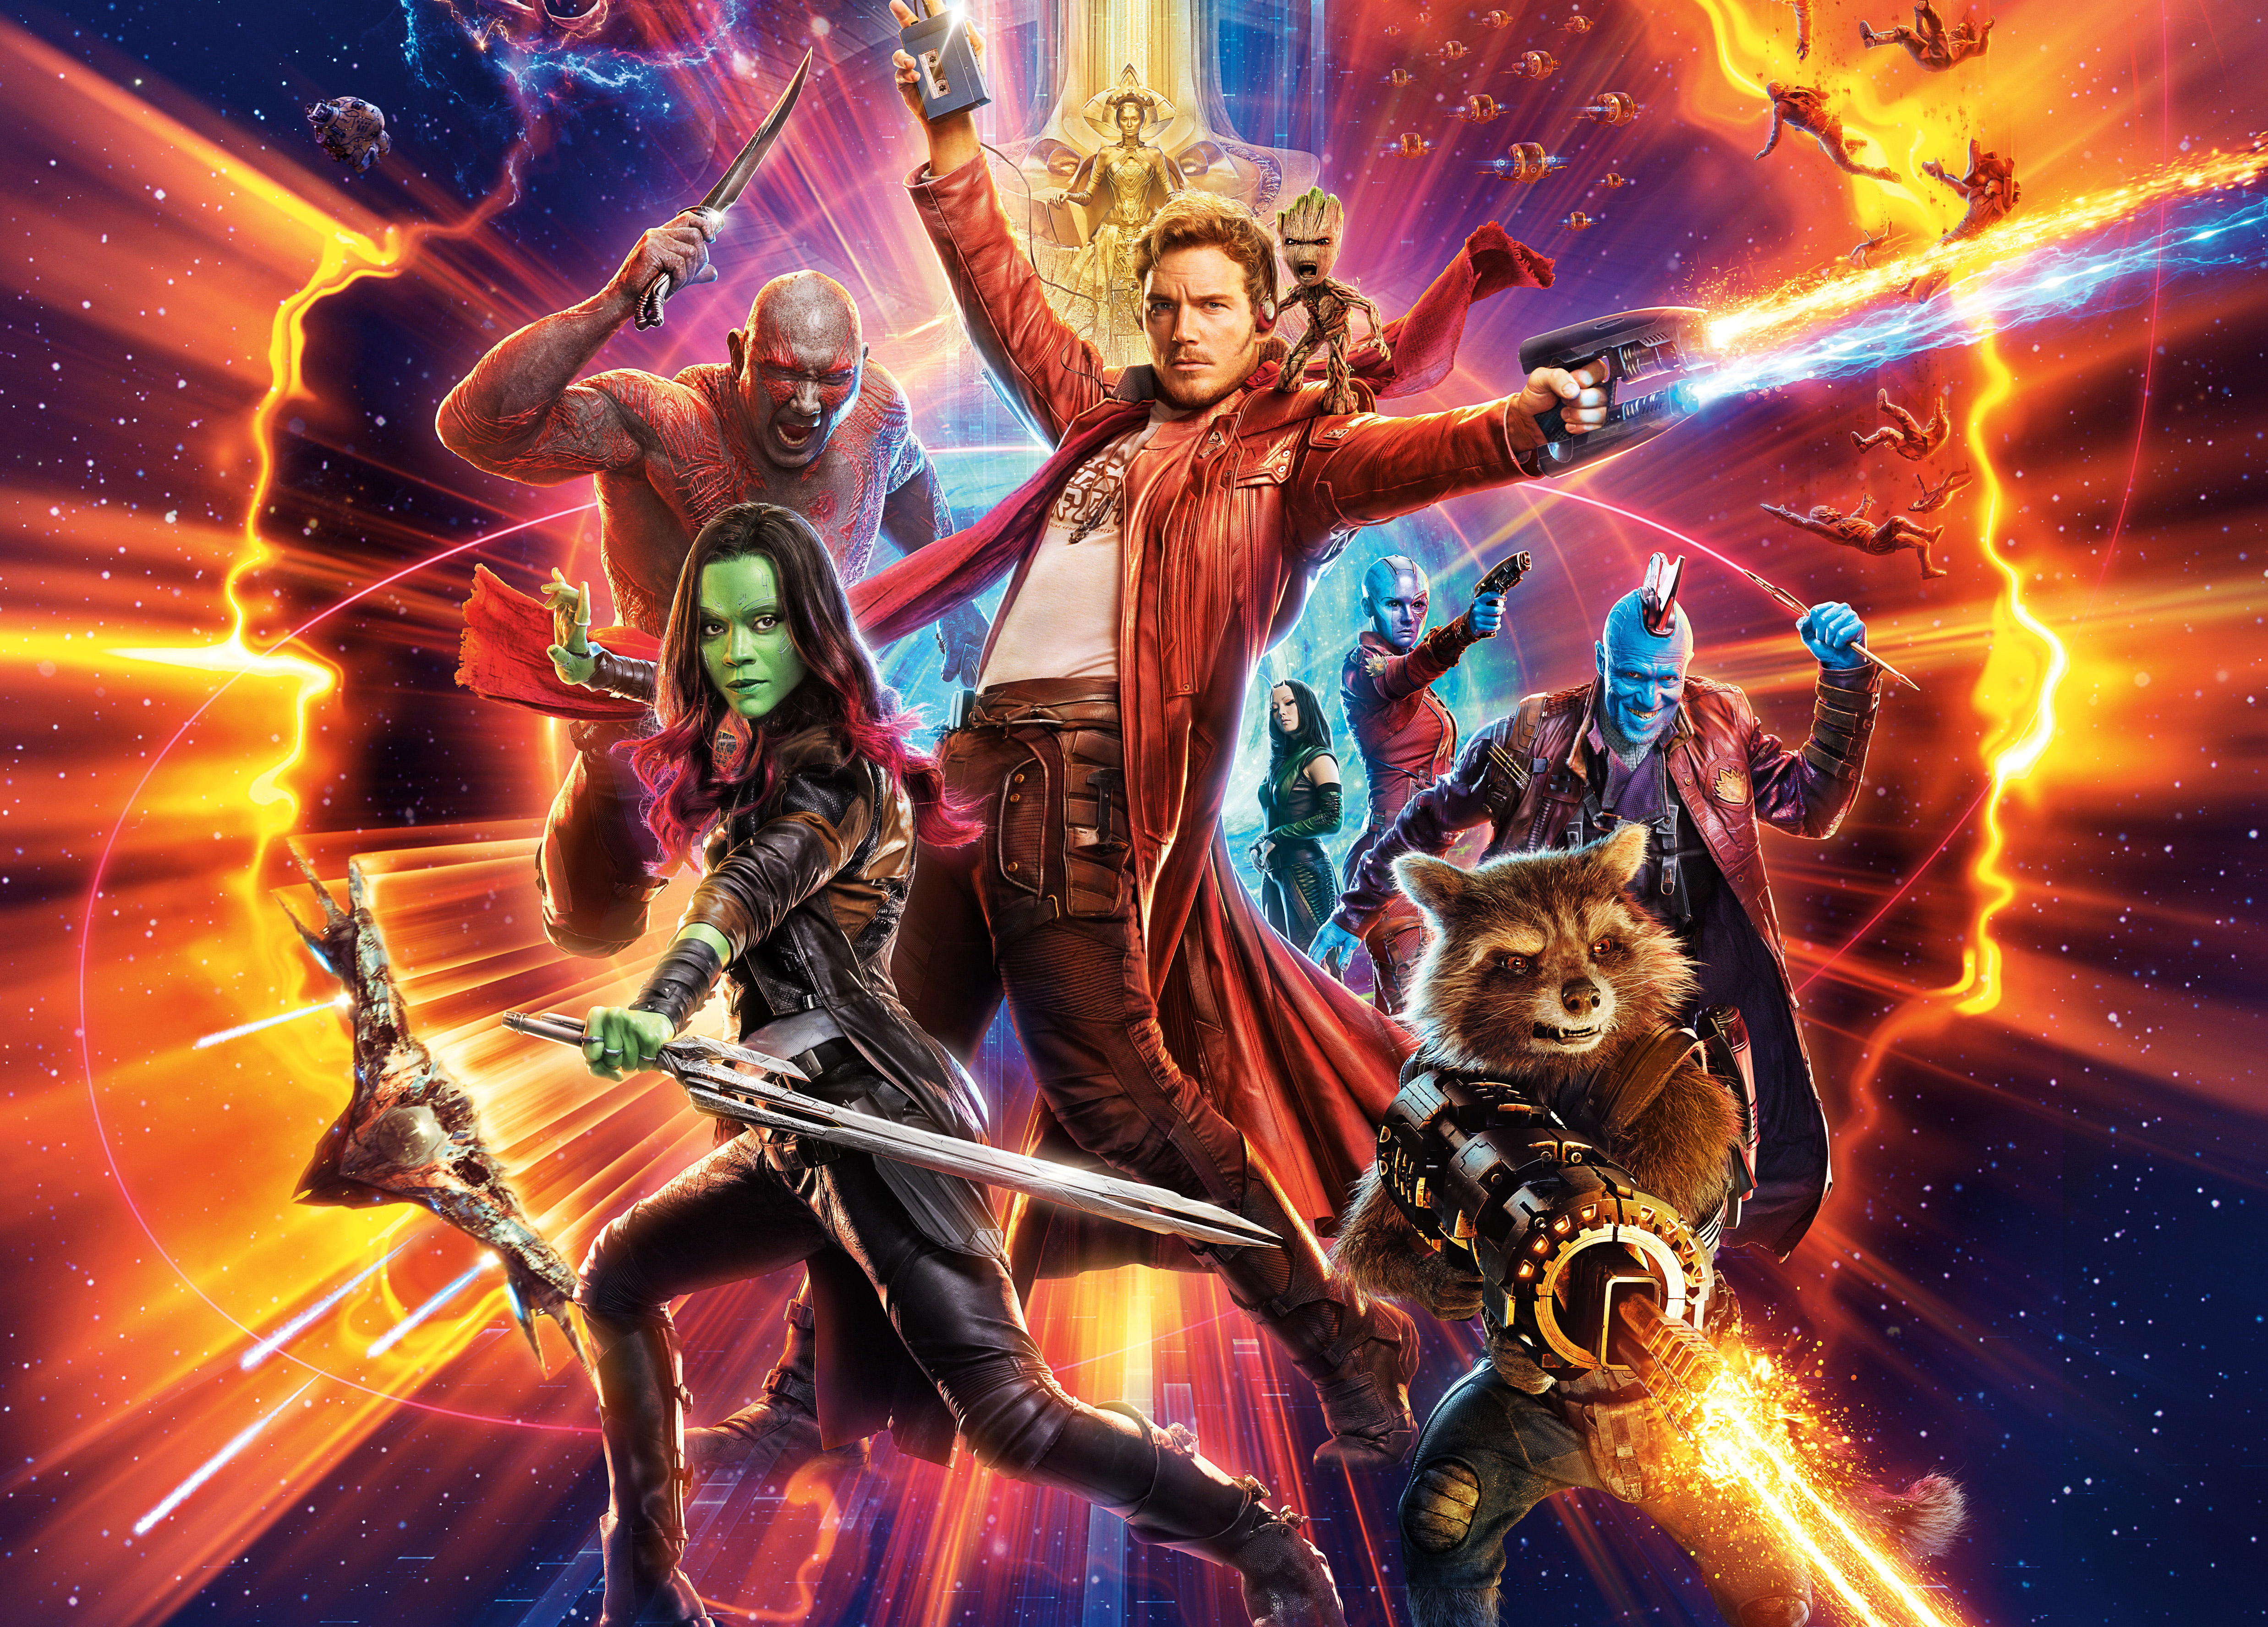 Guardians Of The Galaxy Vol 2 4k Ultra Hd Wallpaper Background Image 4950x3552 Id 913835 Wallpaper Abyss